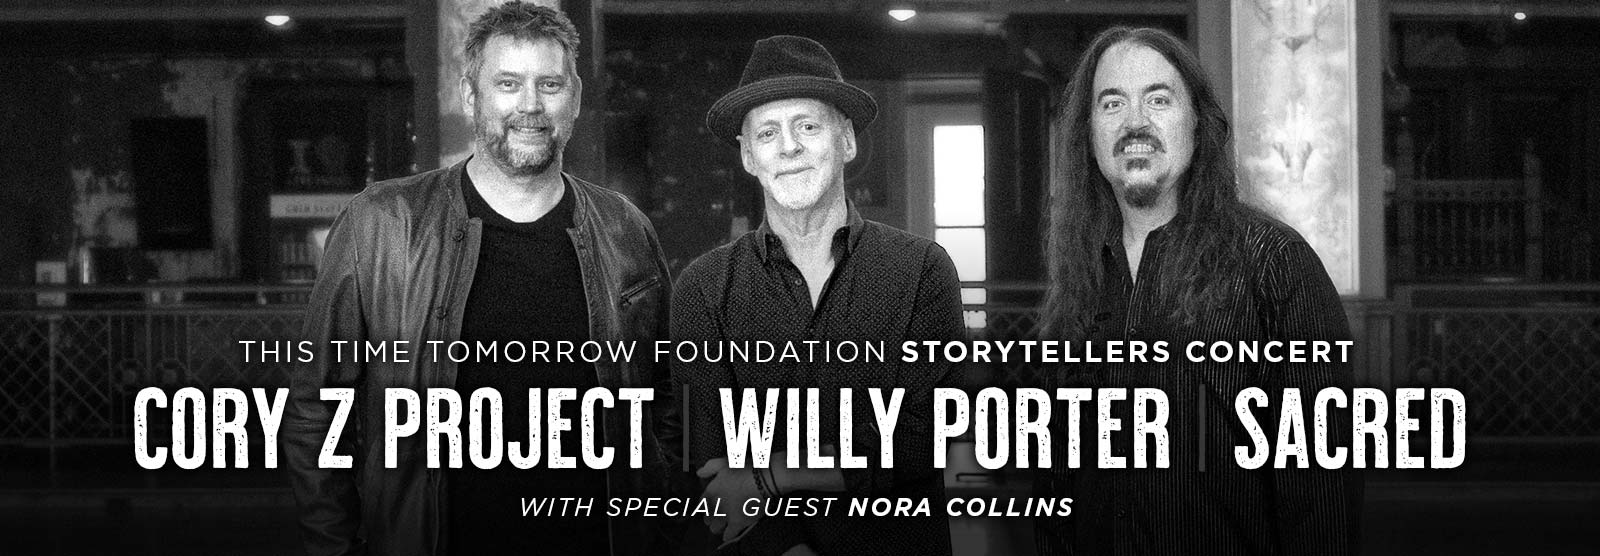 This Time Tomorrow Foundation Storytellers Concert